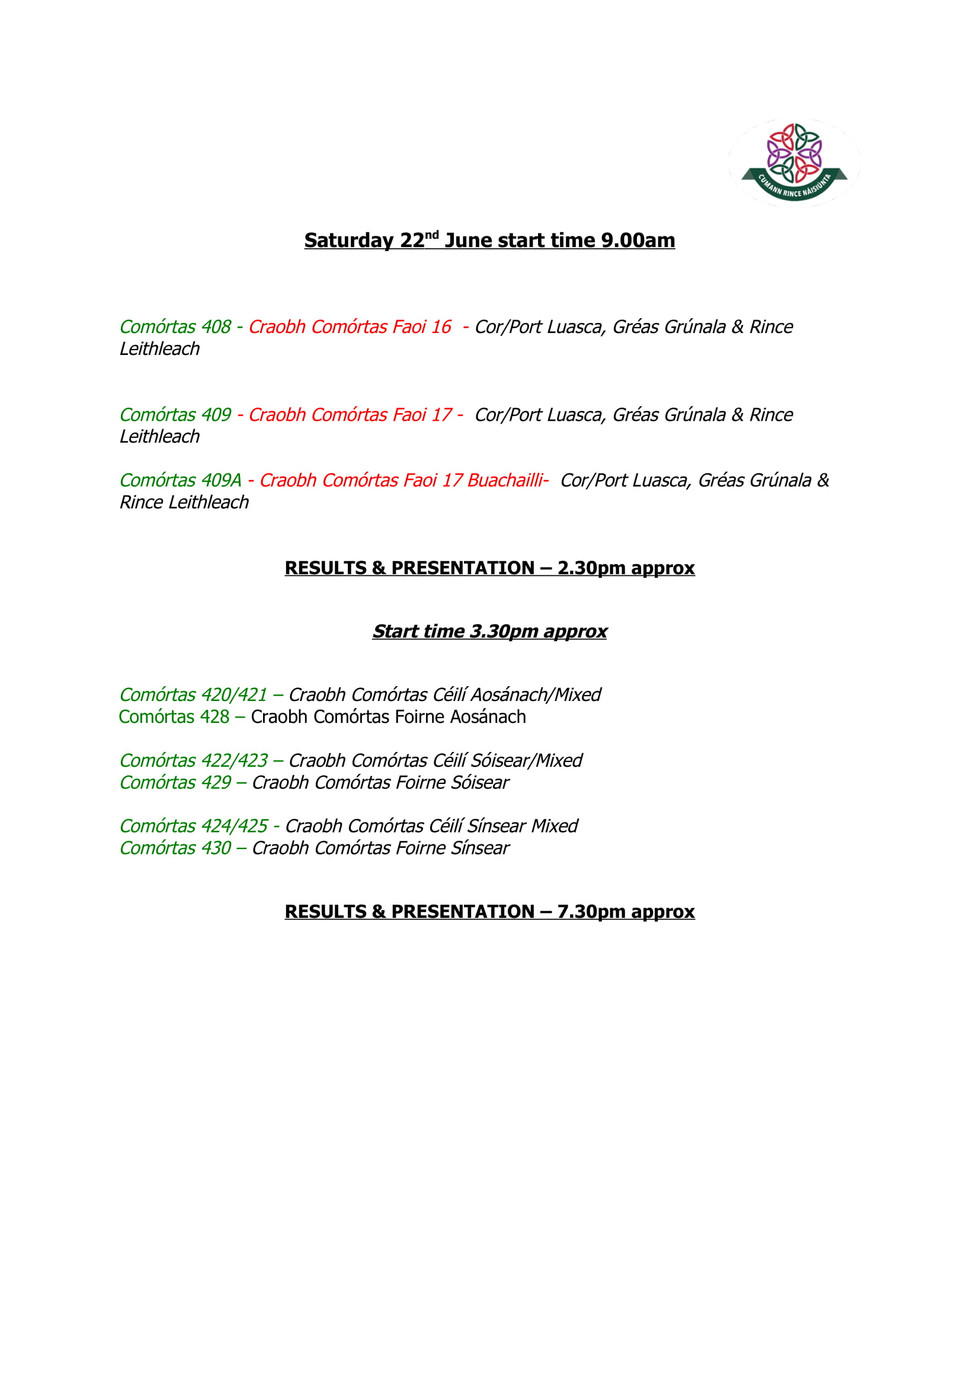 World timetable 2019 FINAL ed-4.jpg